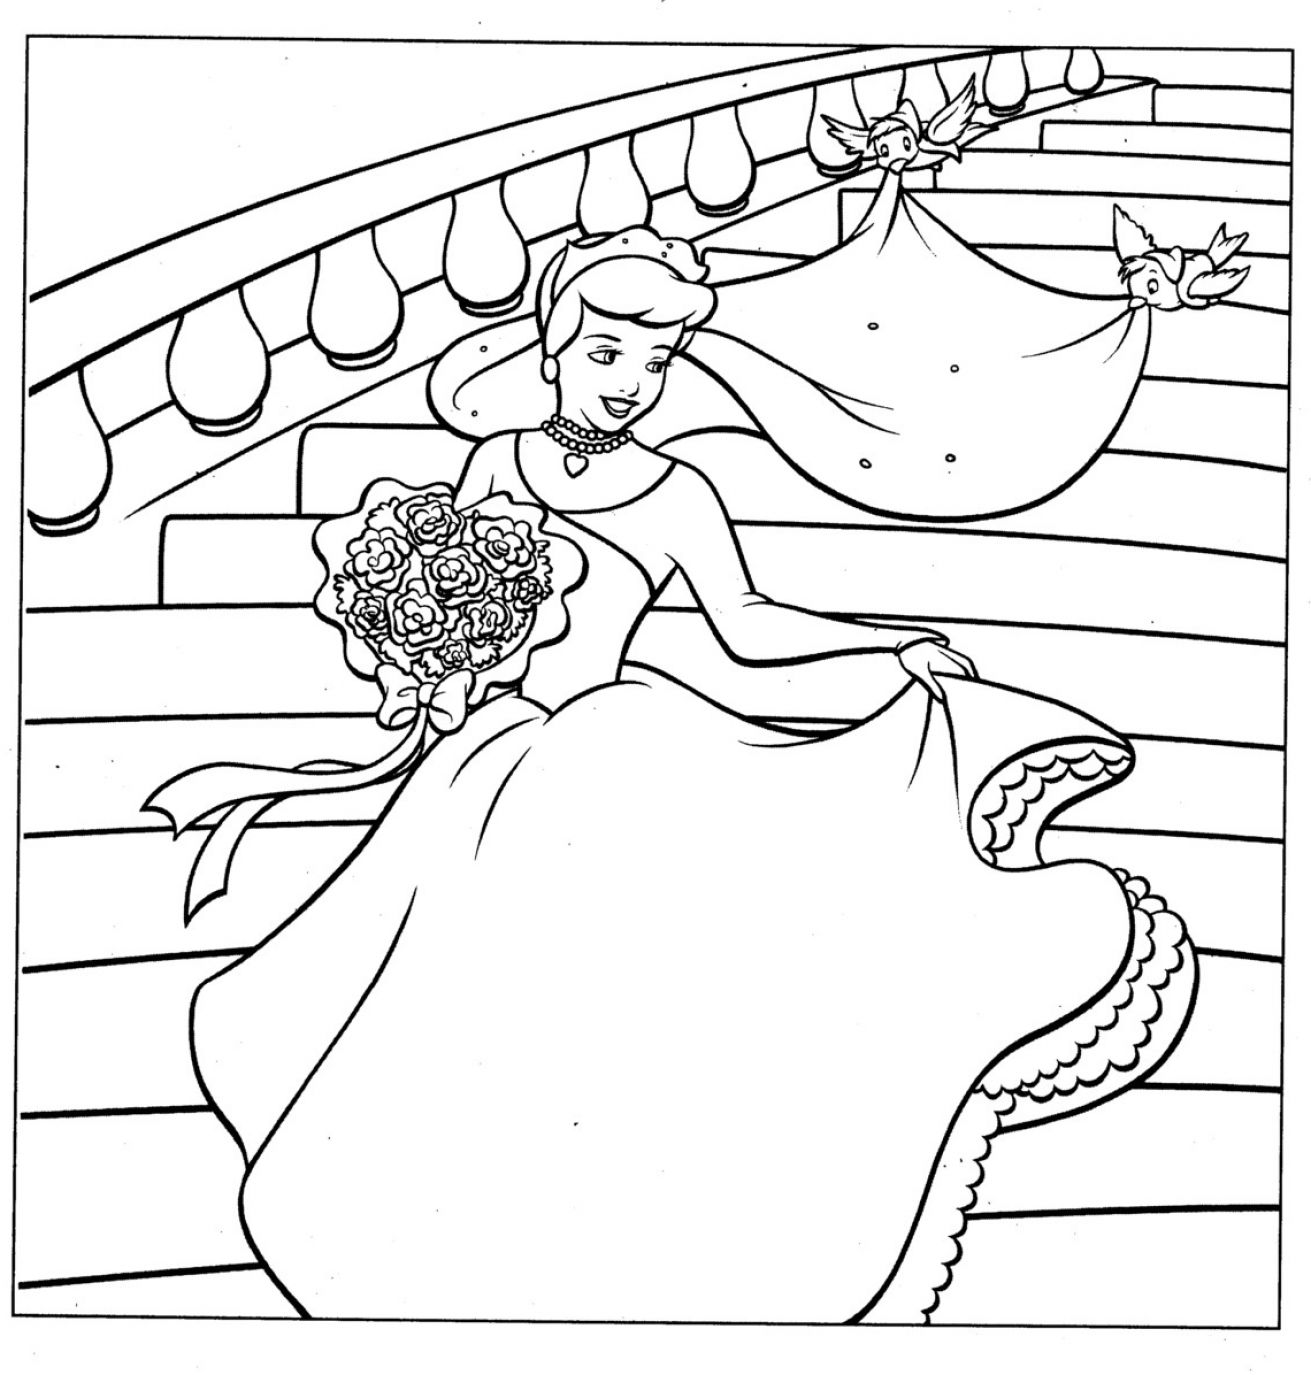 disney wedding coloring pages - photo#21